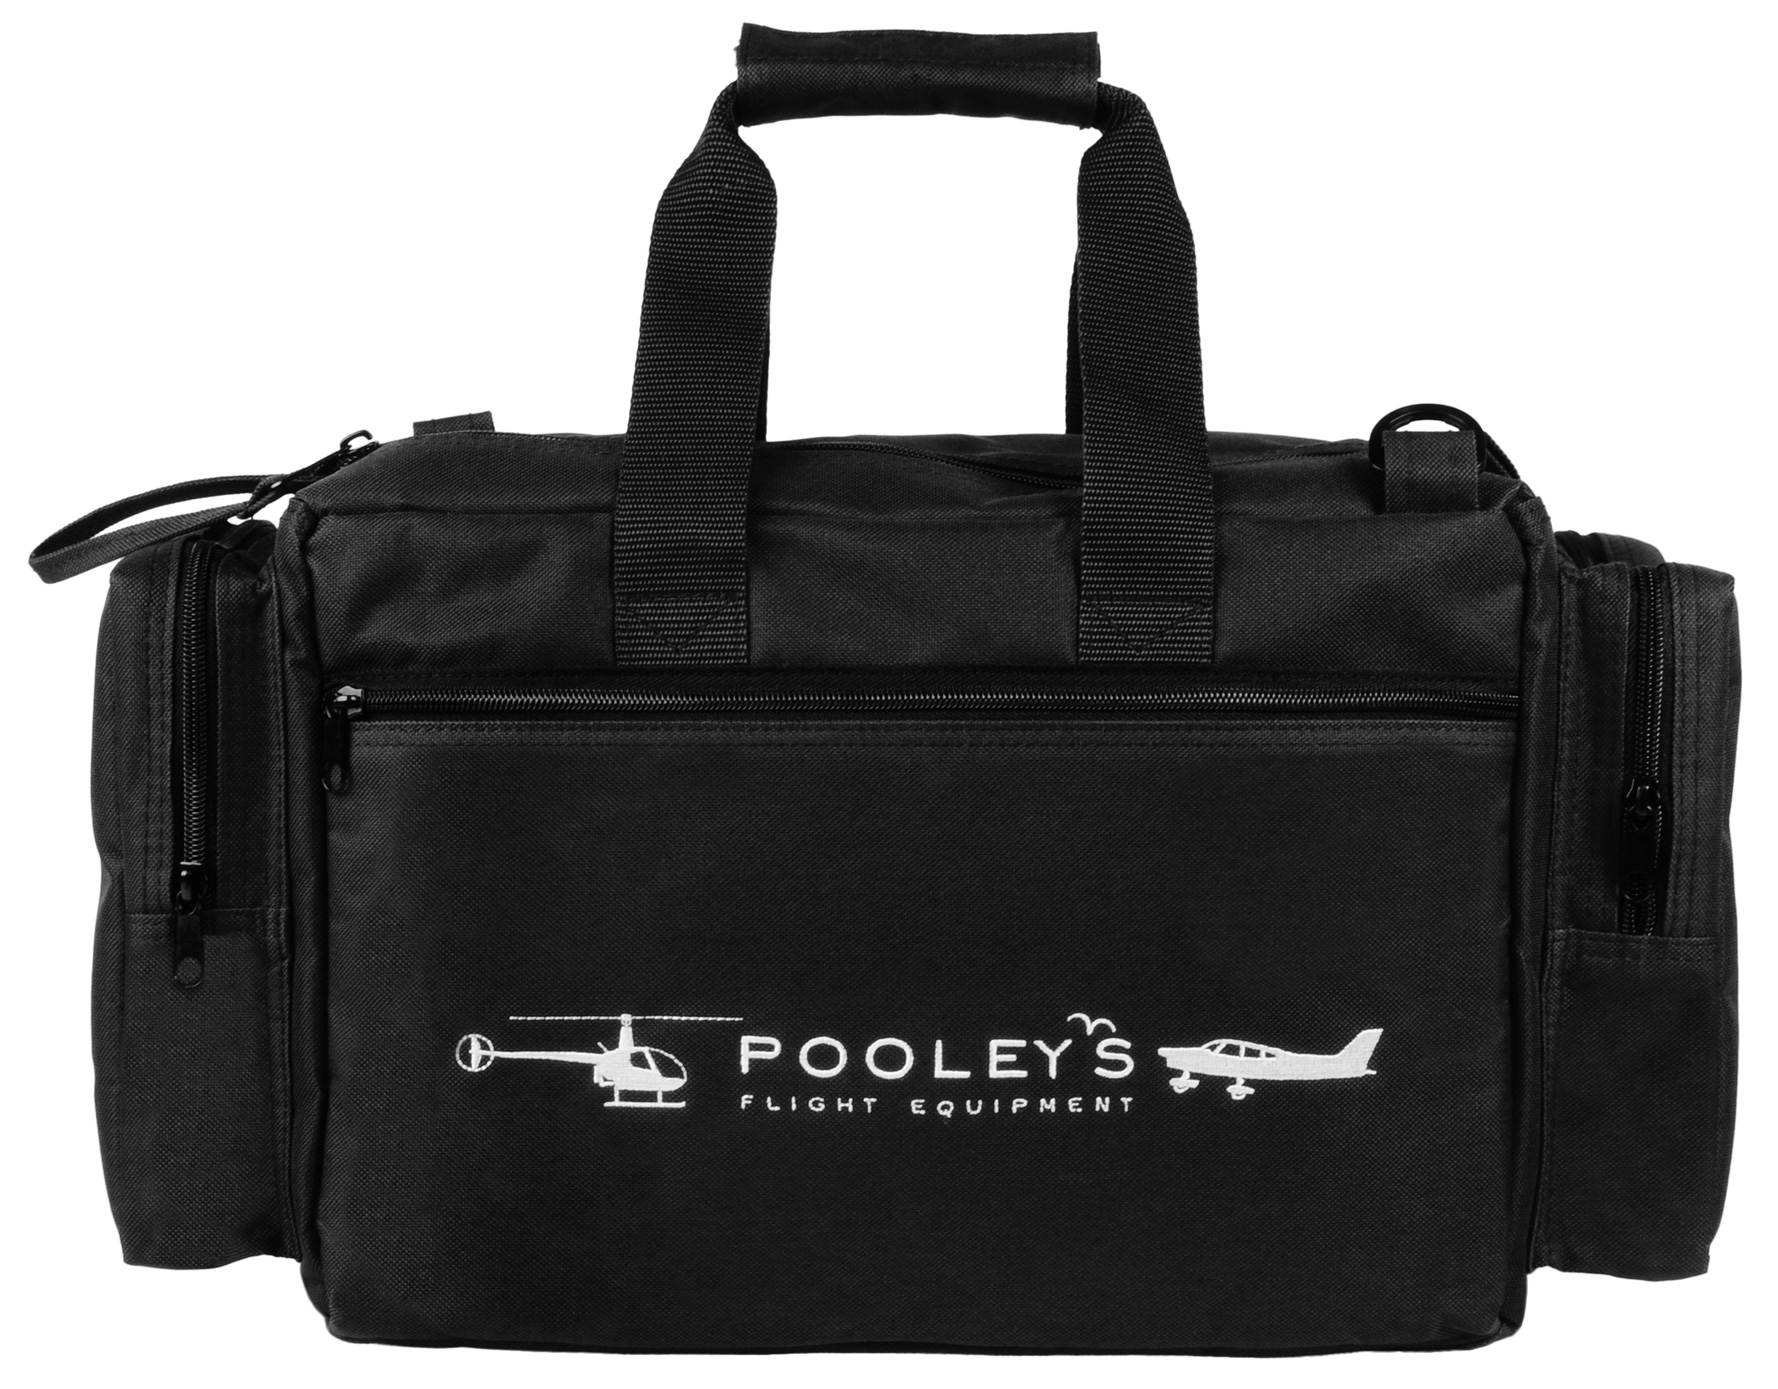 FC-8 Pooleys Pilot's Flight Bag (Navy Blue or Black)Image Id:146903